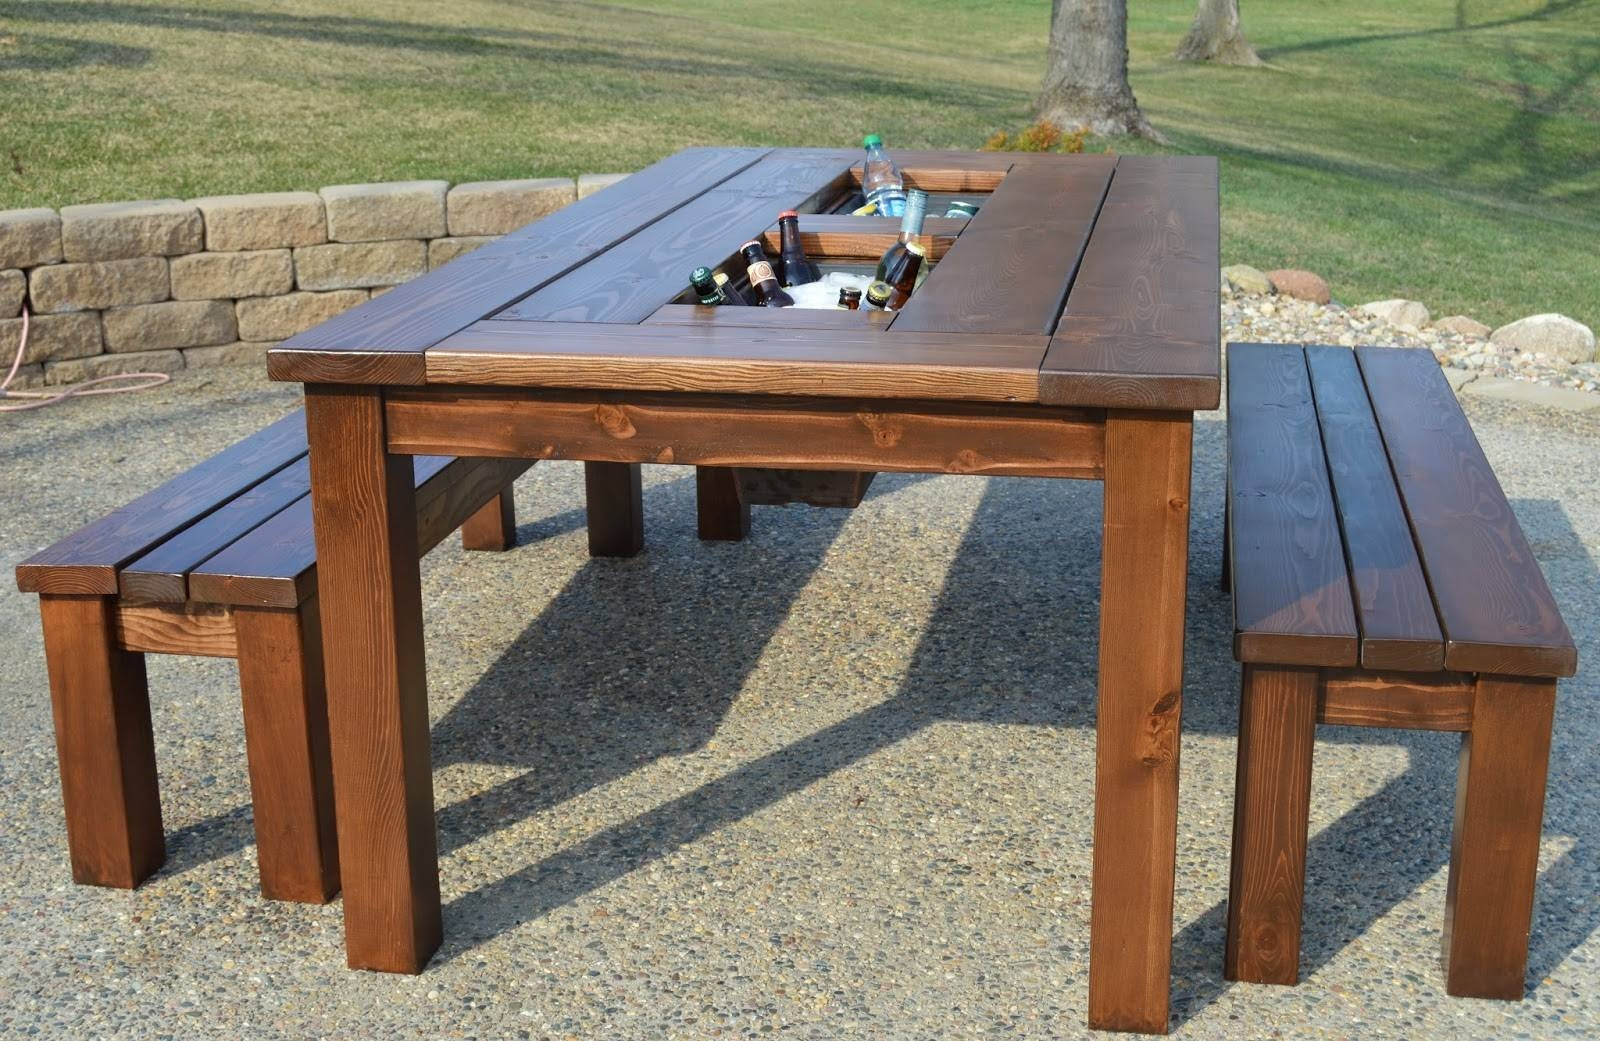 Fine Wood Patio Furniture Italian 8 Advantages Of For Design Throughout Wooden Garden Coffee Tables (Image 10 of 30)